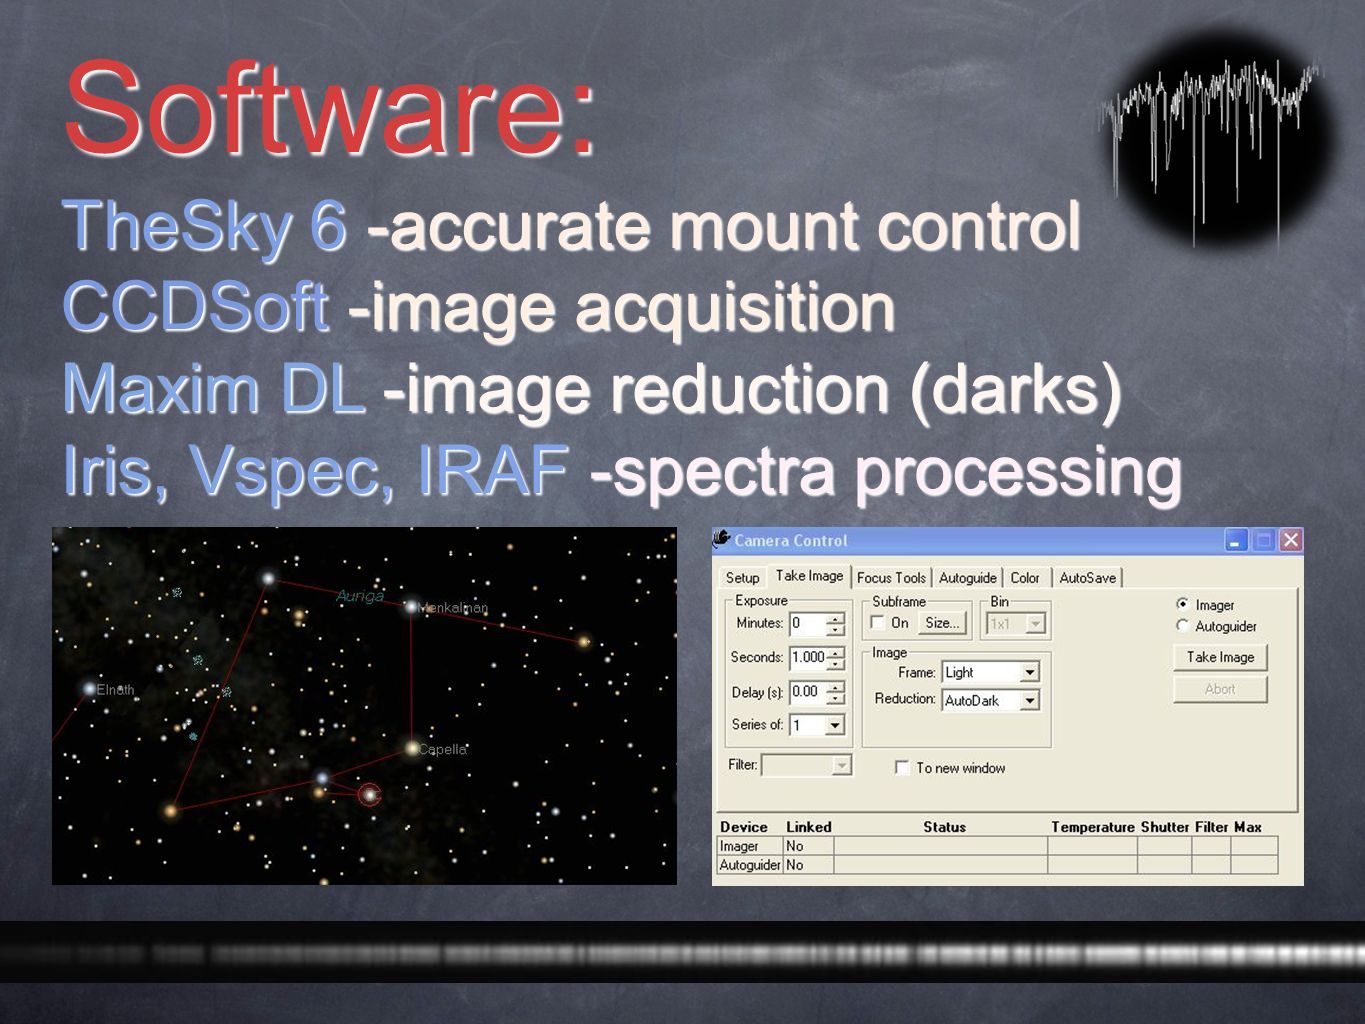 Software: TheSky 6 -accurate mount control CCDSoft -image acquisition Maxim DL -image reduction (darks) Iris, Vspec, IRAF -spectra processing